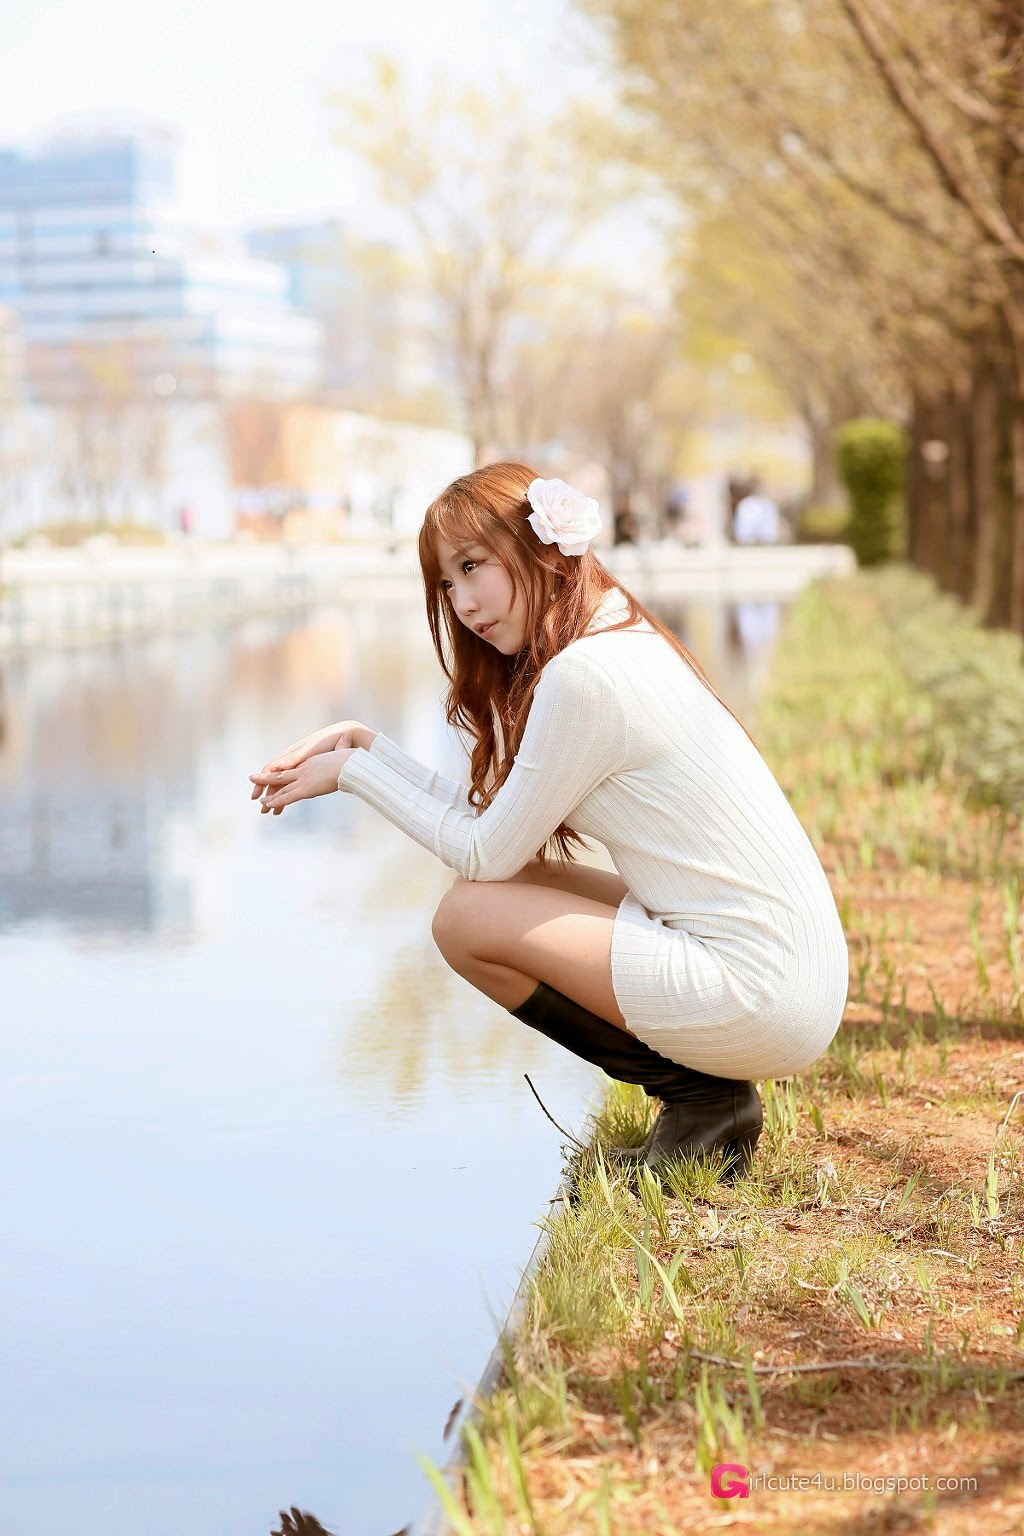 2 Kim Da On - Down By The River - very cute asian girl-girlcute4u.blogspot.com